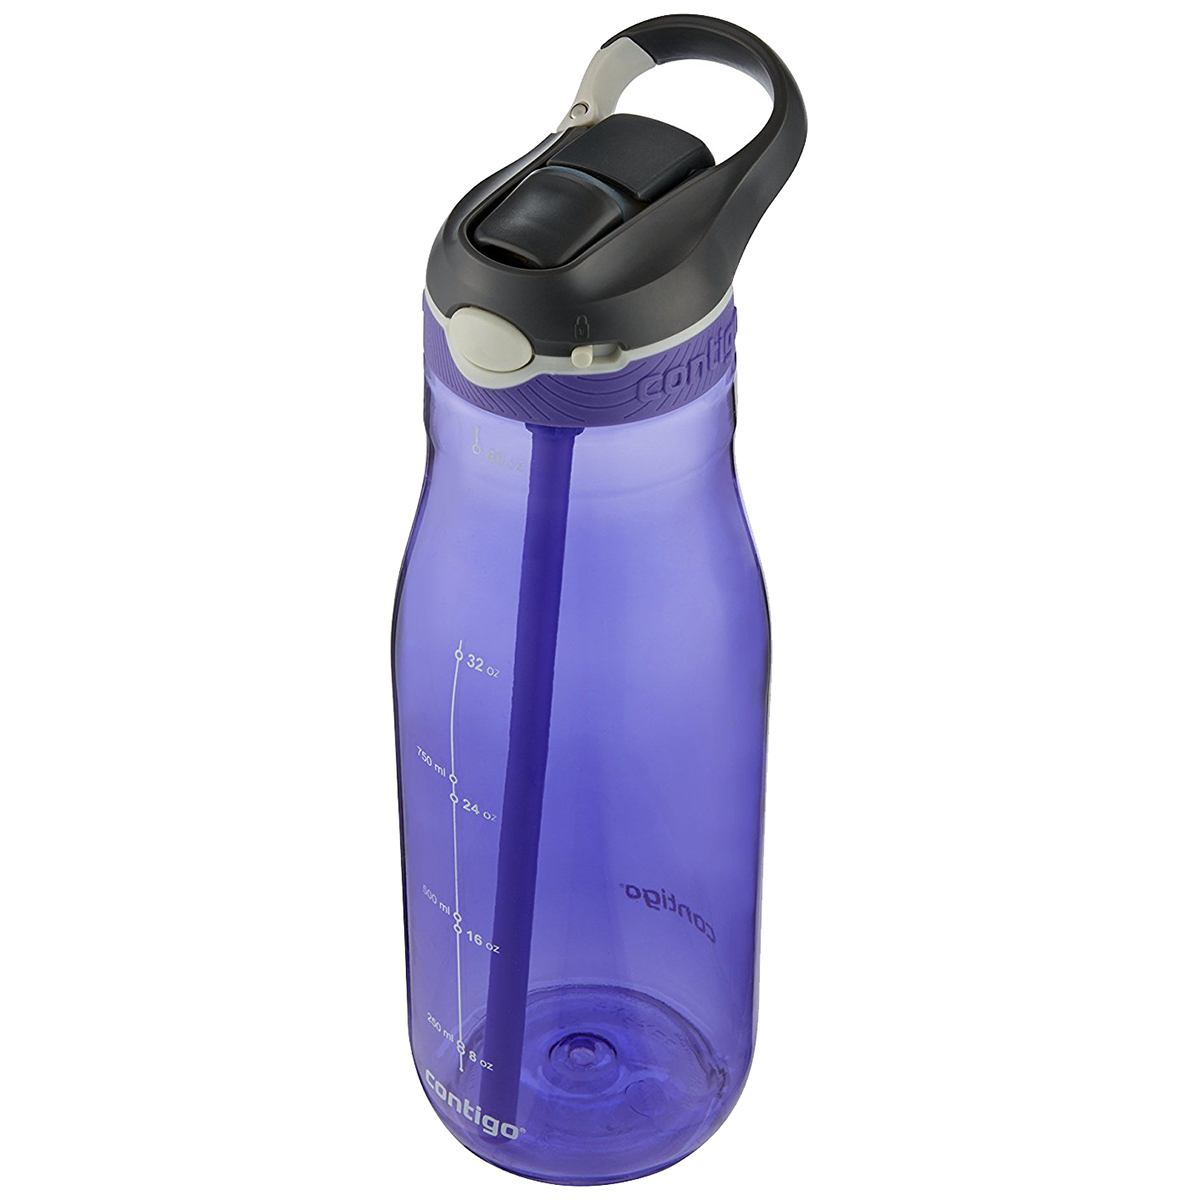 Contigo-40-oz-Ashland-Autospout-Water-Bottle thumbnail 9